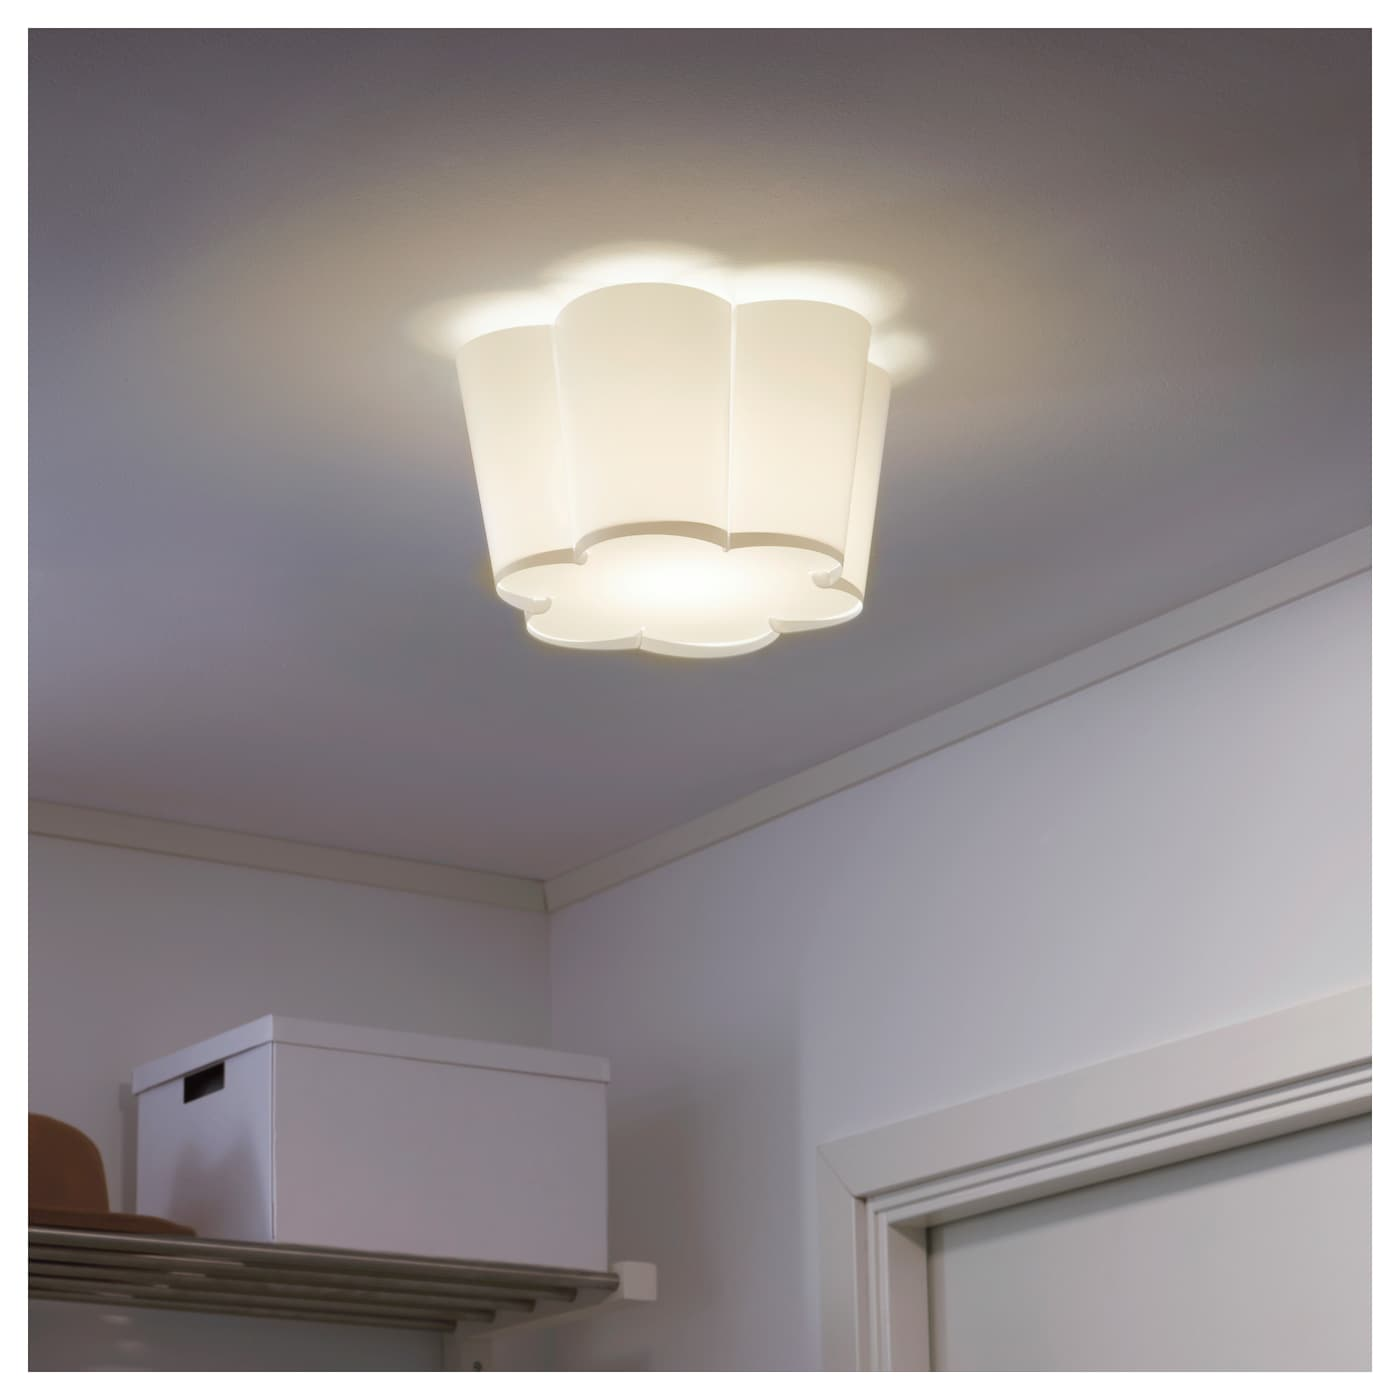 IKEA LYSBOJ ceiling lamp Diffused light that provides good general light in the room.